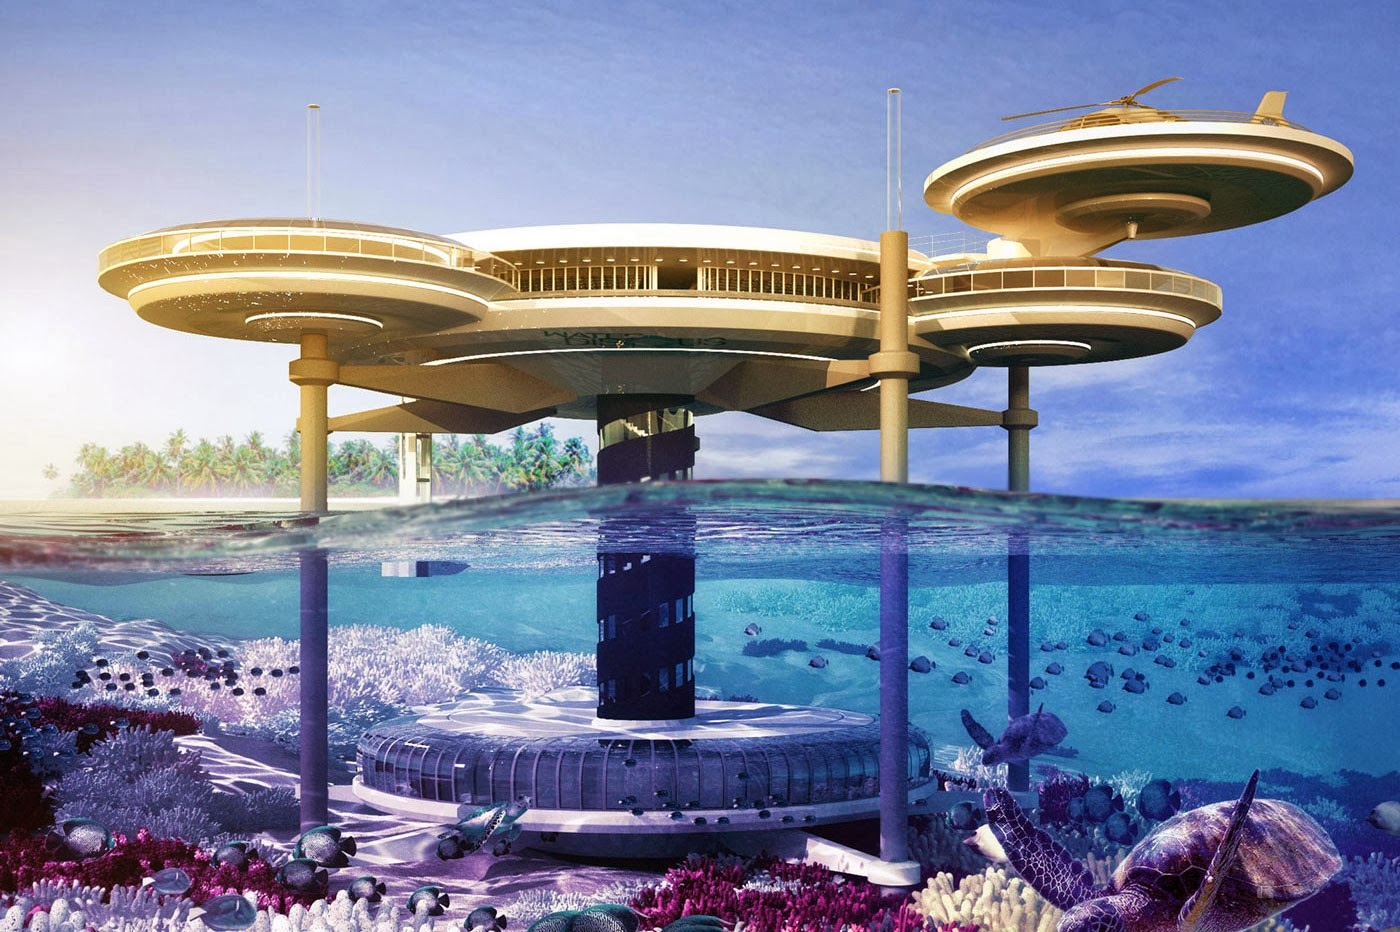 Travel trip journey hydropolis underwater hotel dubai for 10 best hotels in dubai